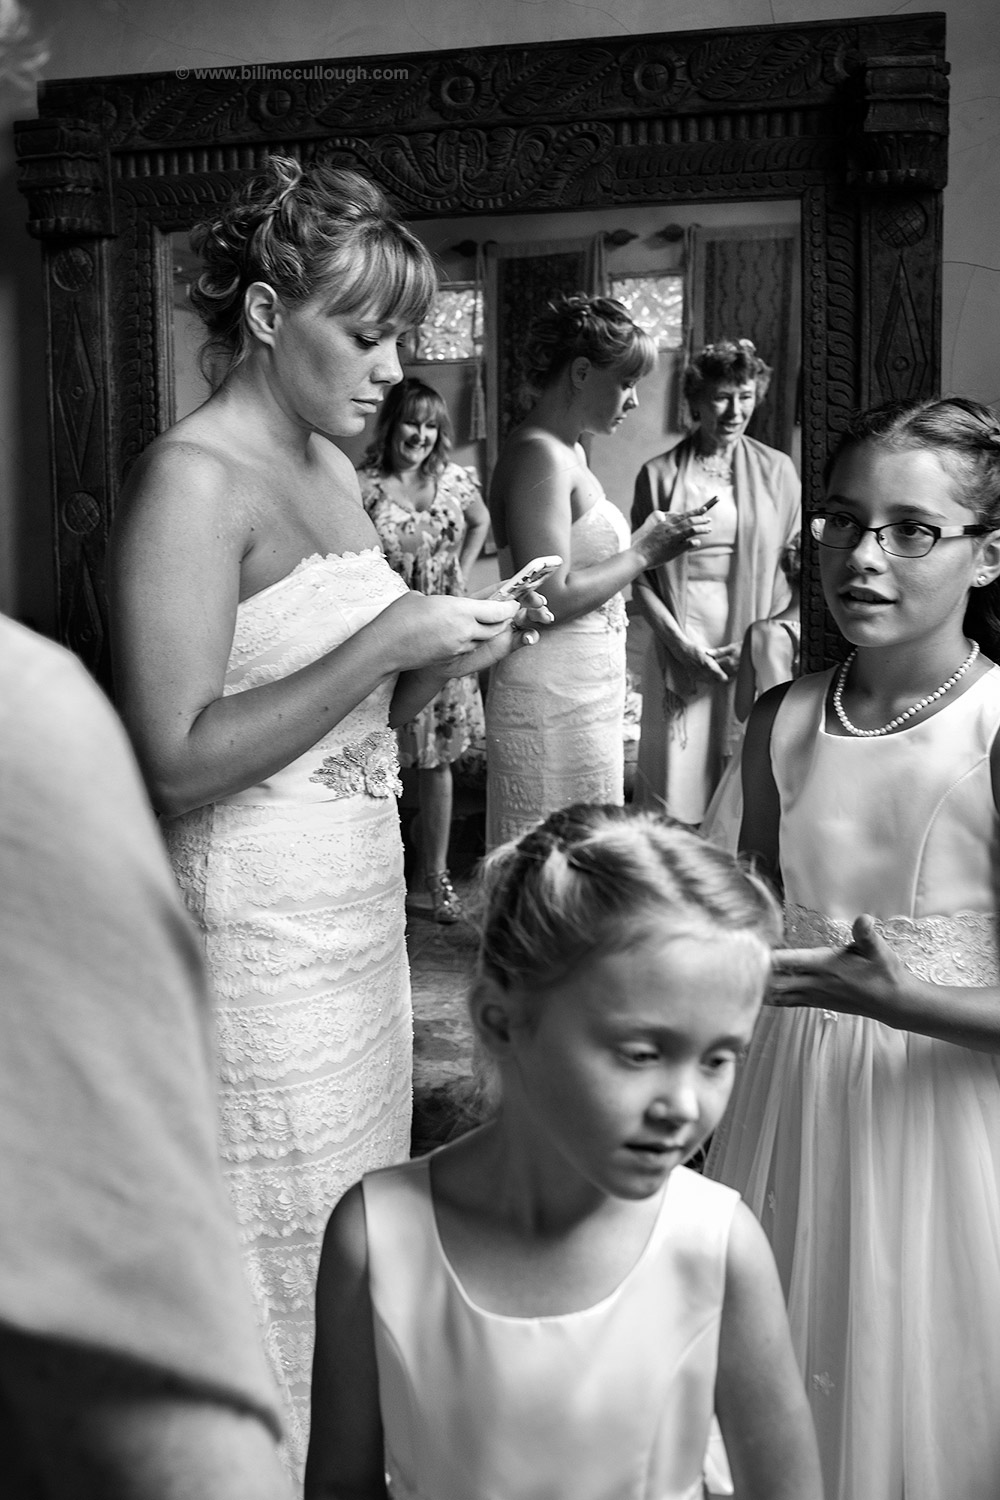 chapel-dulcinea-wedding150619-1029-15.jpg